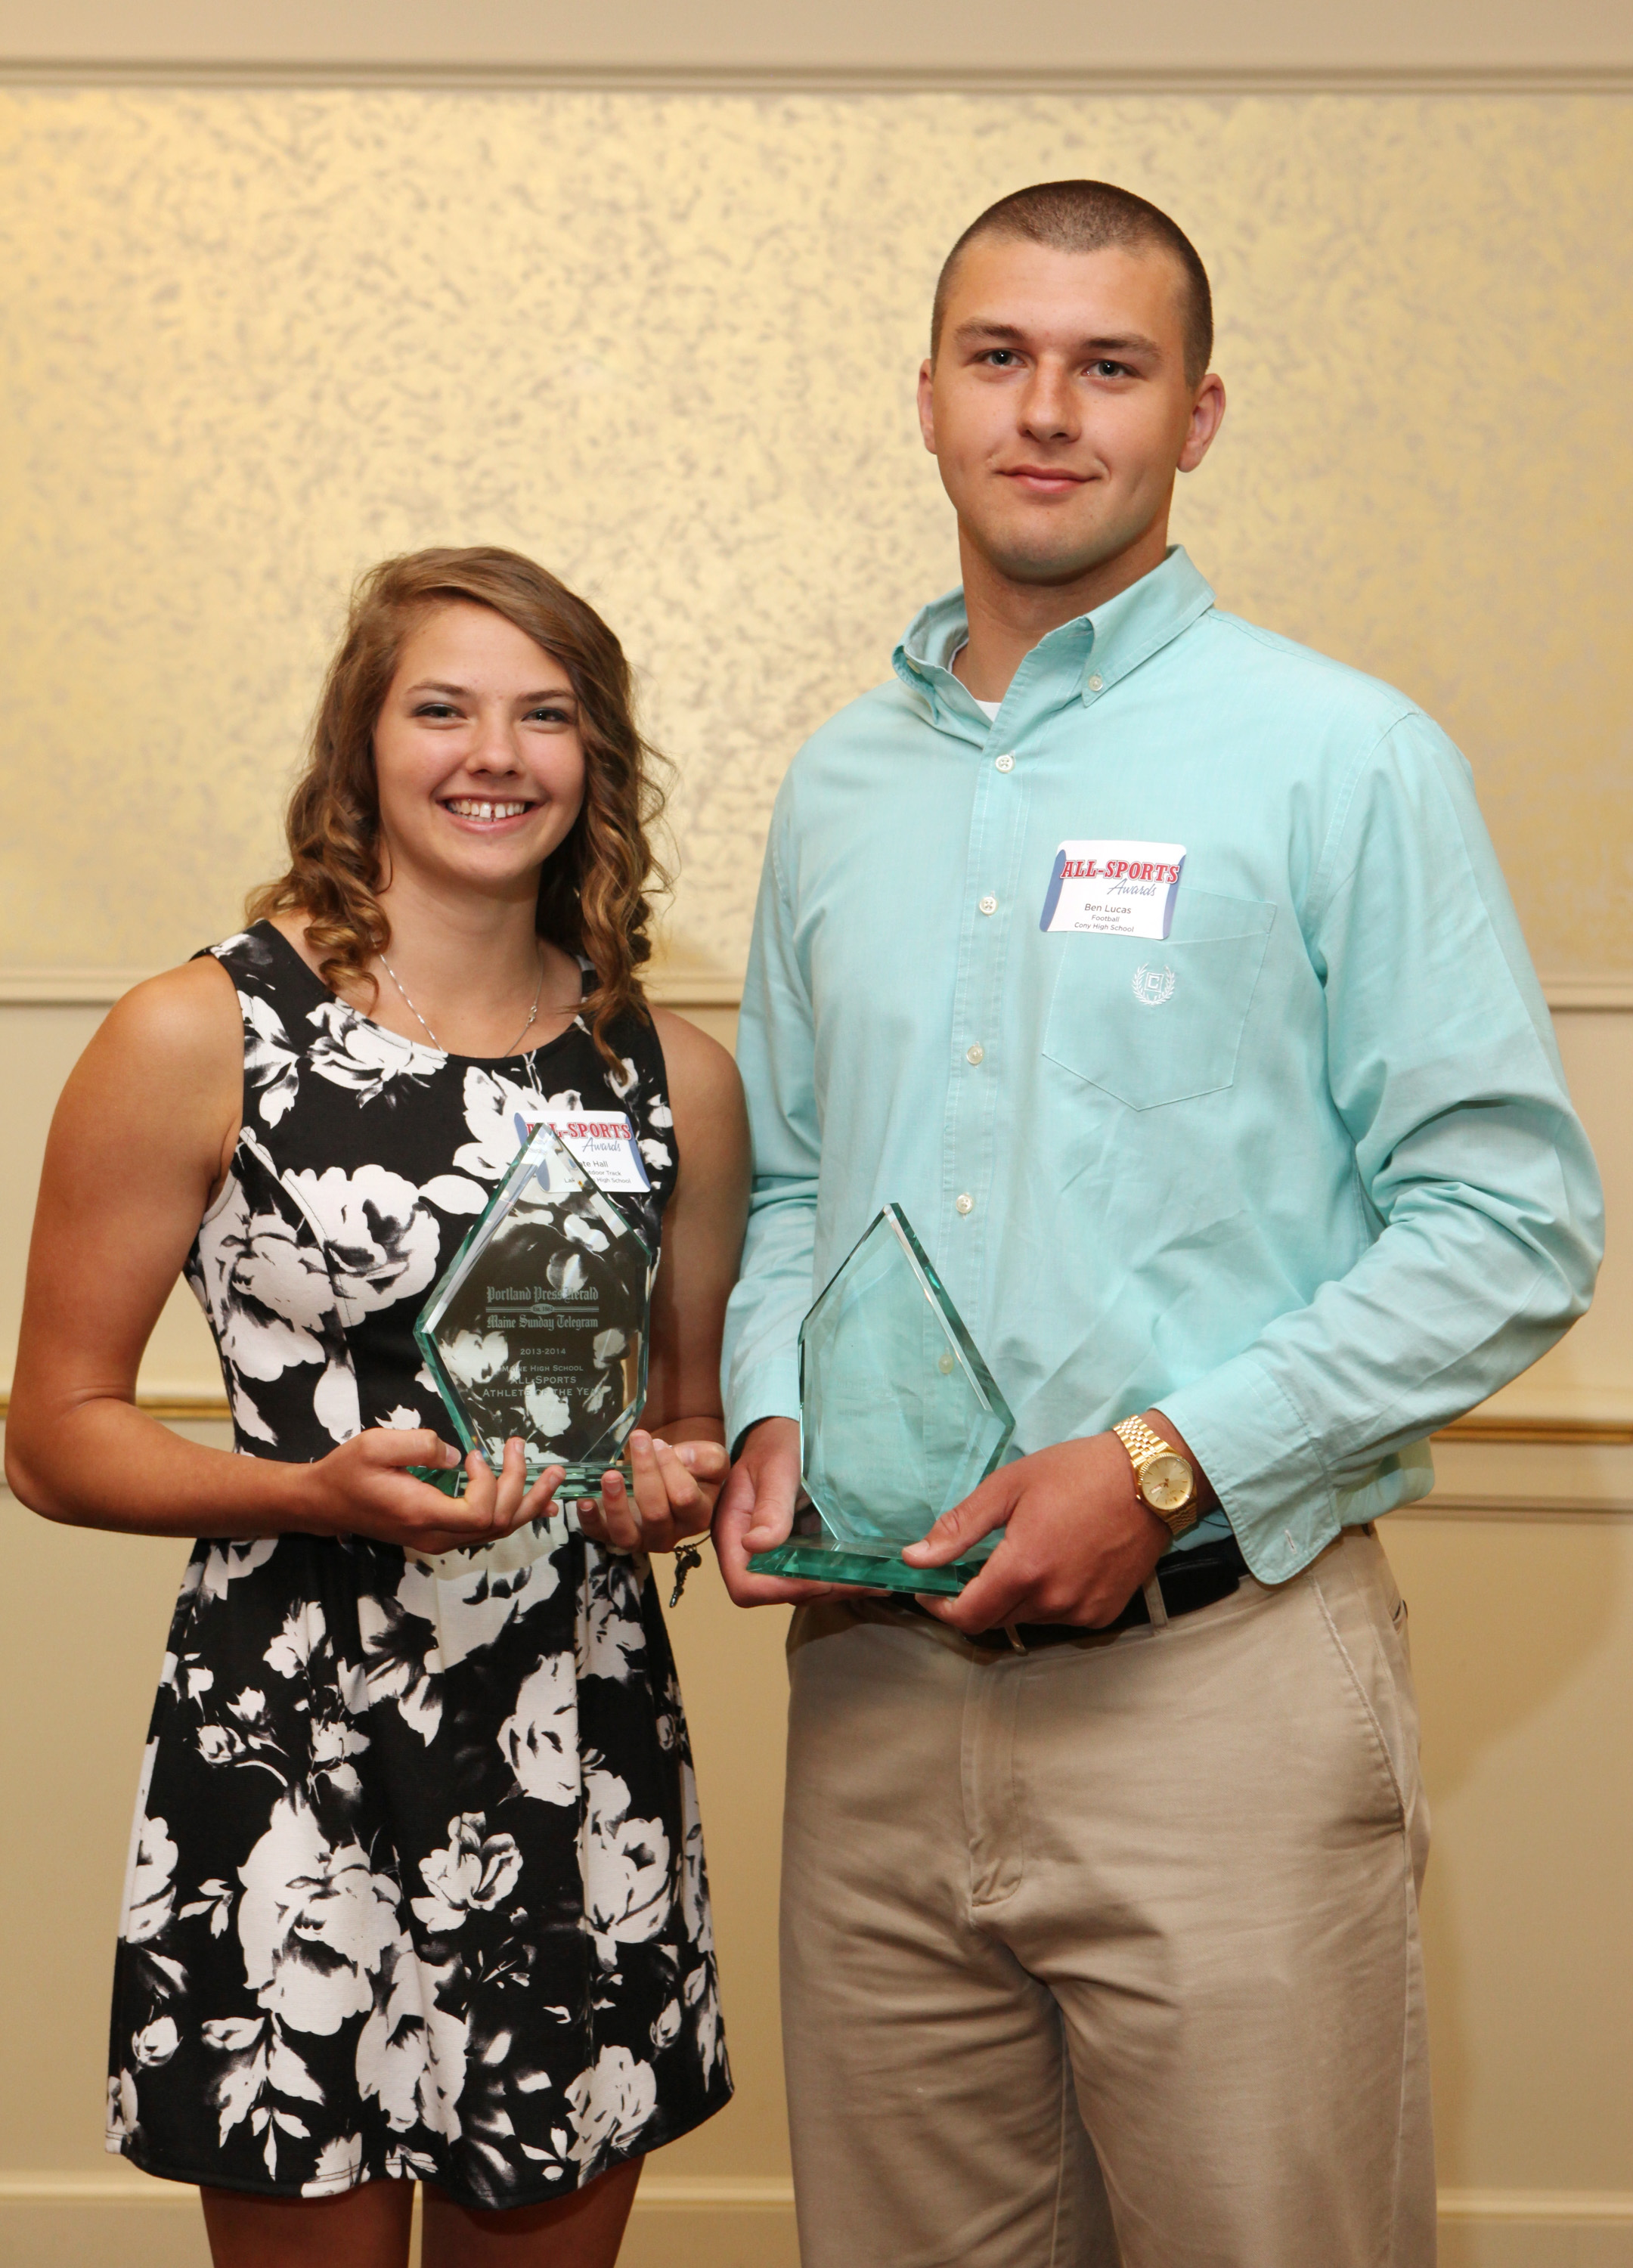 Athletes of the Year Kate Hall of Lake Region High School, and Ben Lucas of Cony High School poses with their awards at the 27th Annual All-Sports Awards ceremony Sunday. Joel Page/Staff Photographer